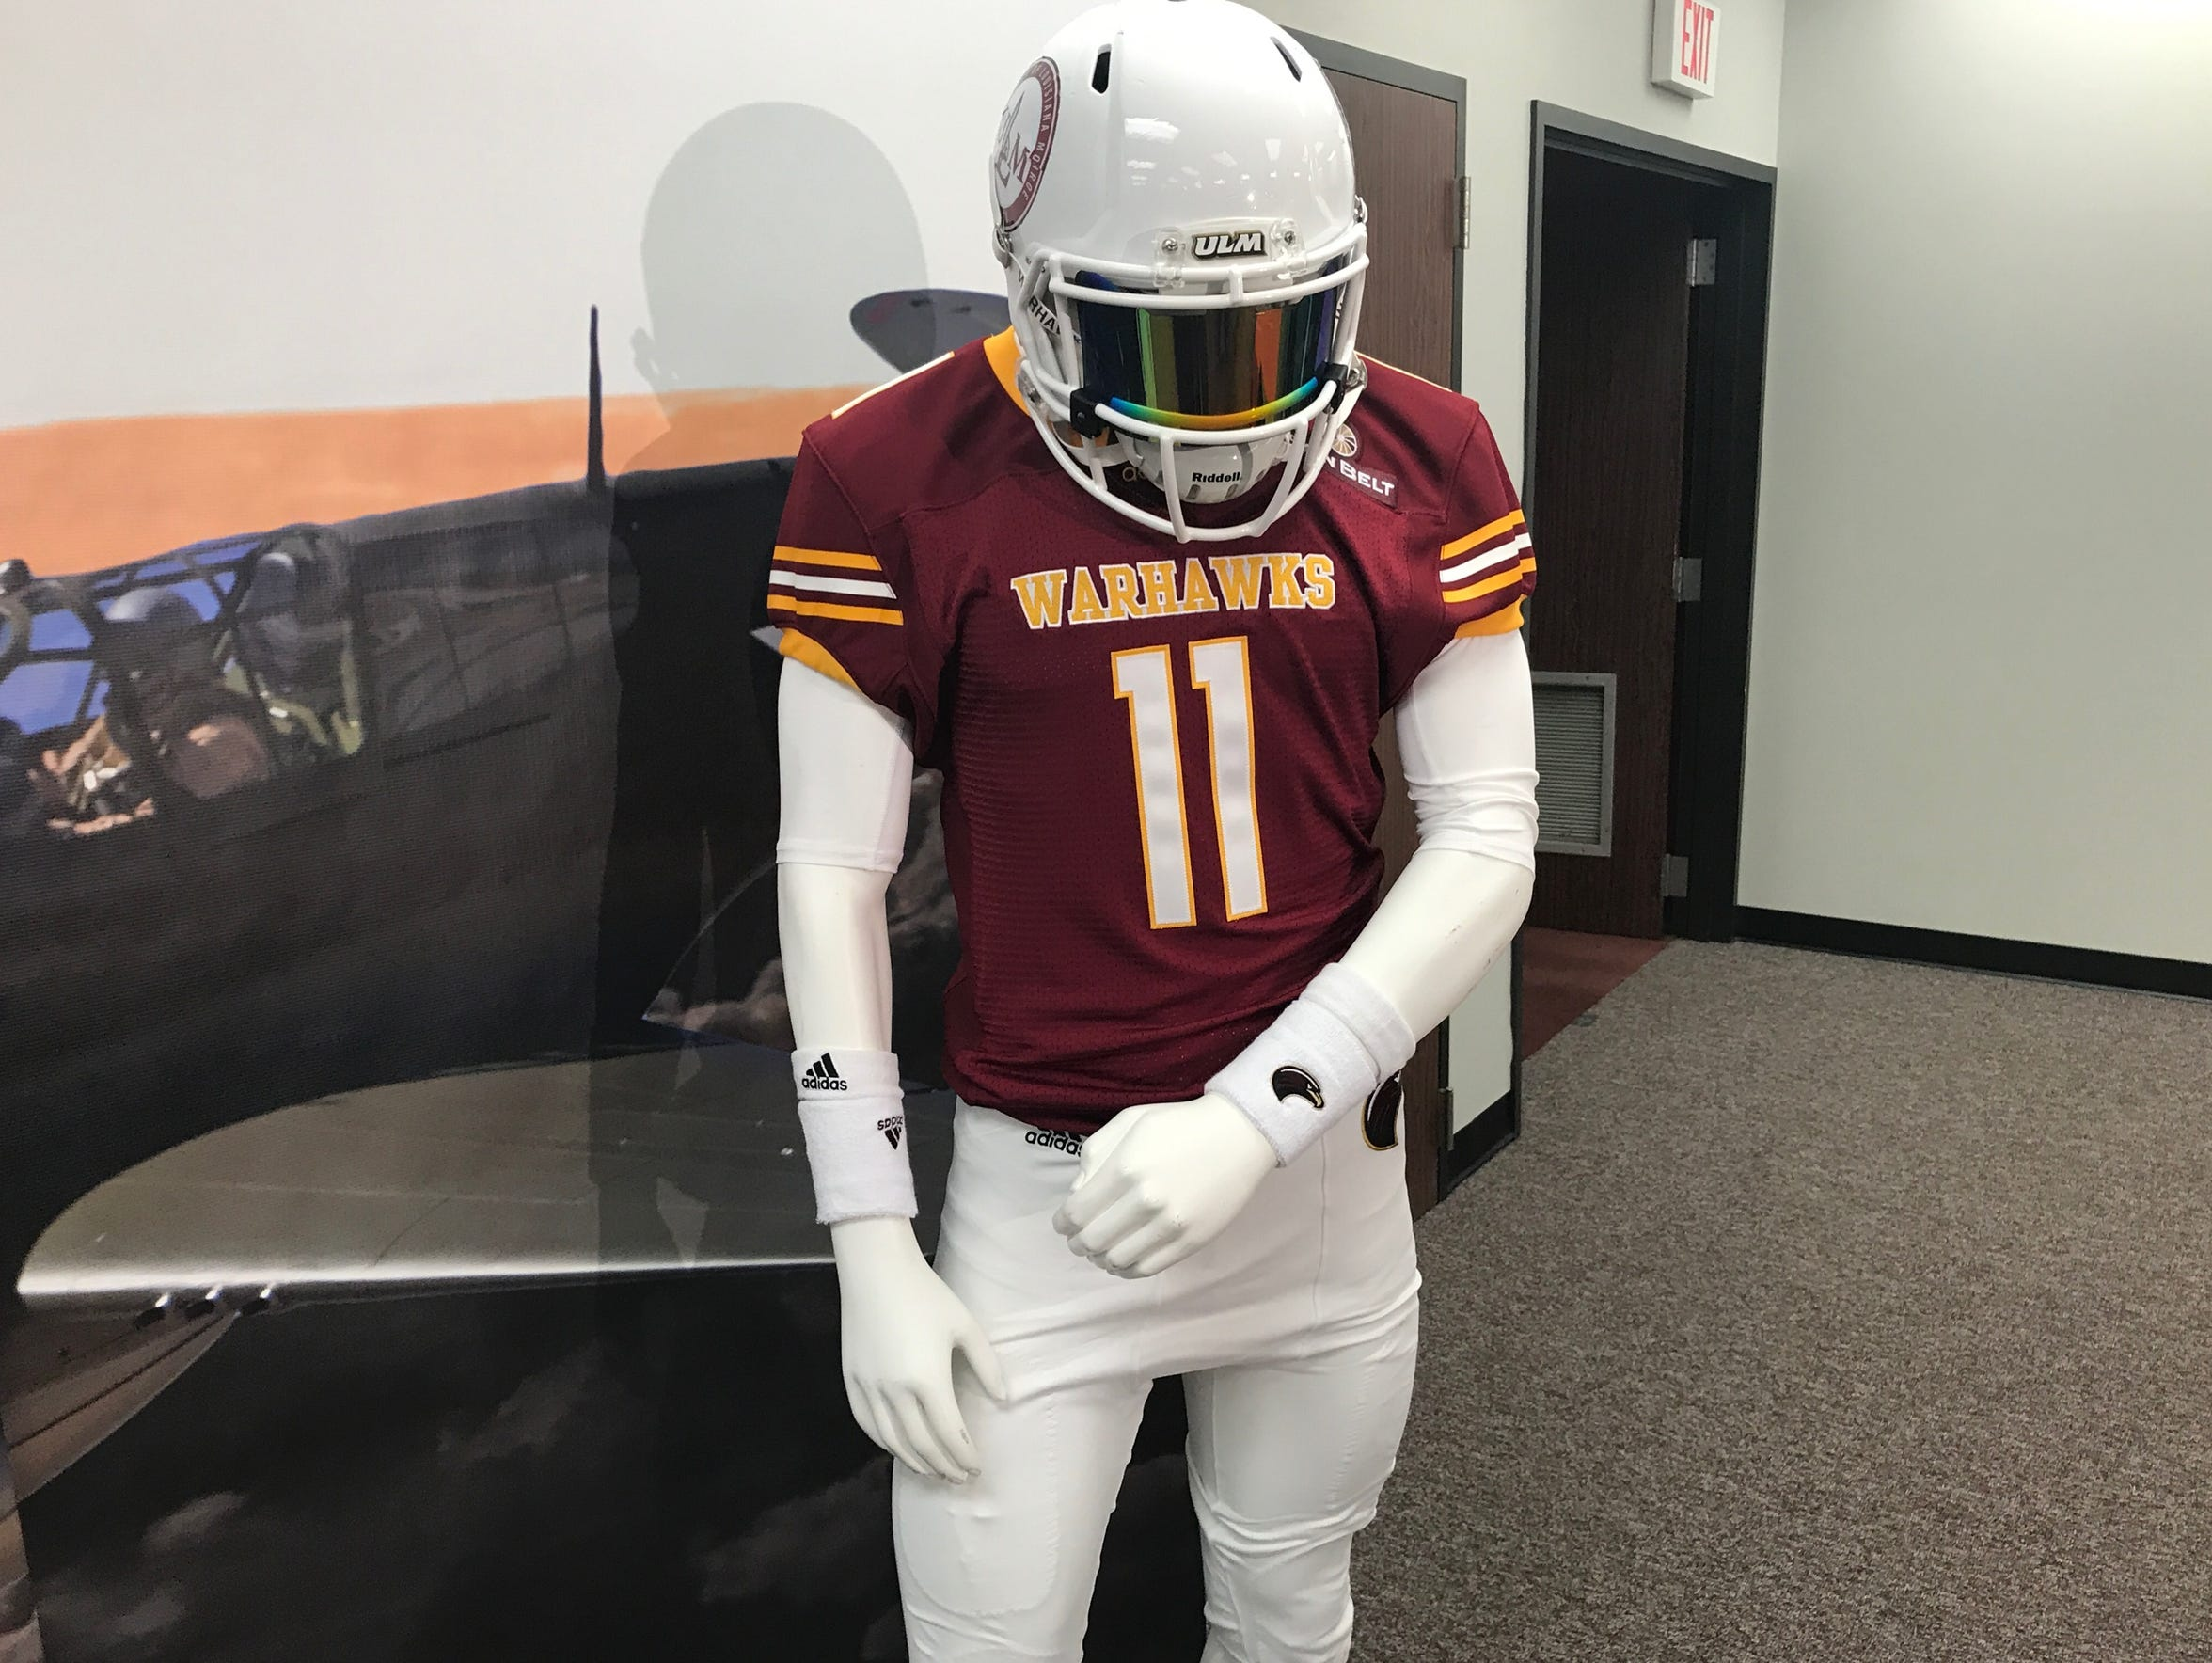 ULM is wearing special tribute jerseys on Saturday